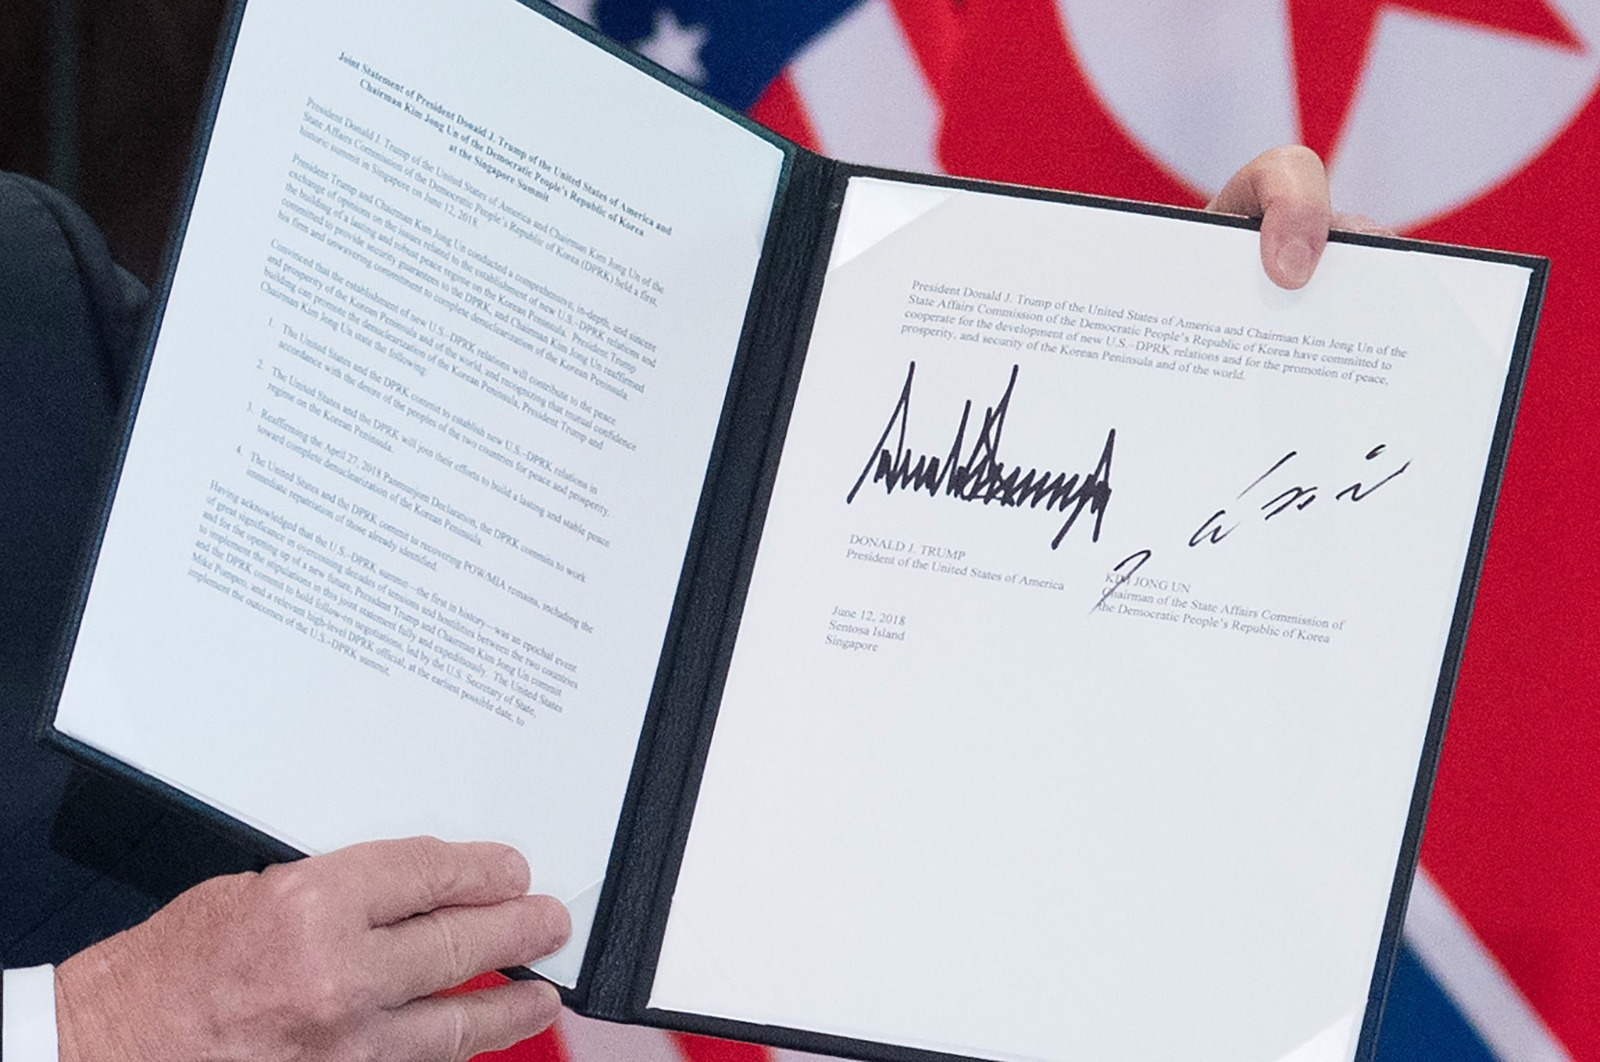 The signatures of US President Donald Trump and North Korea's leader Kim Jong Un are seen on a document following a signing ceremony during their historic US-North Korea summit. Photo courtesy: Ministry of Communications and Information